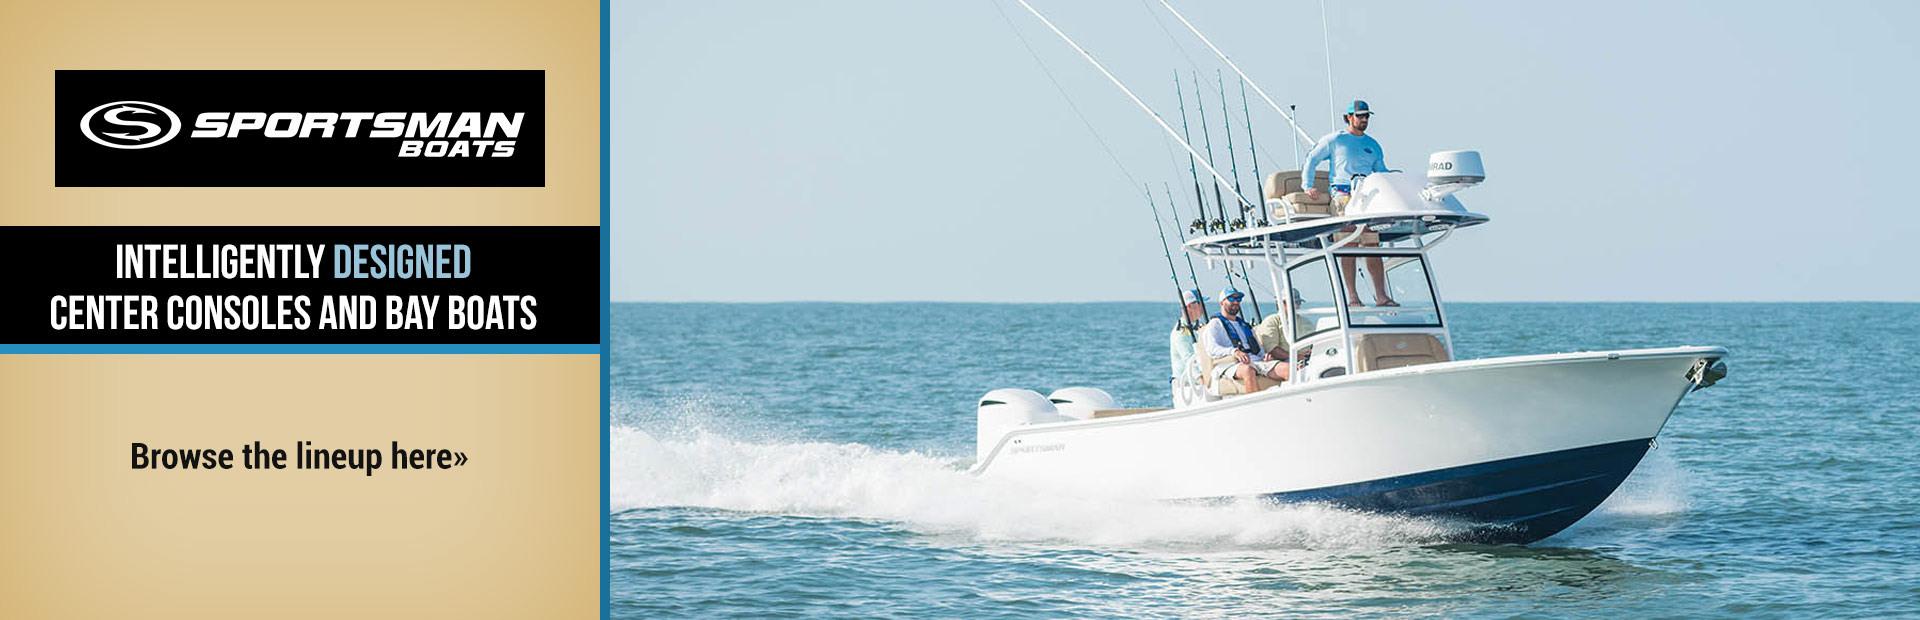 Sportsman Boats: Click here to browse the lineup.